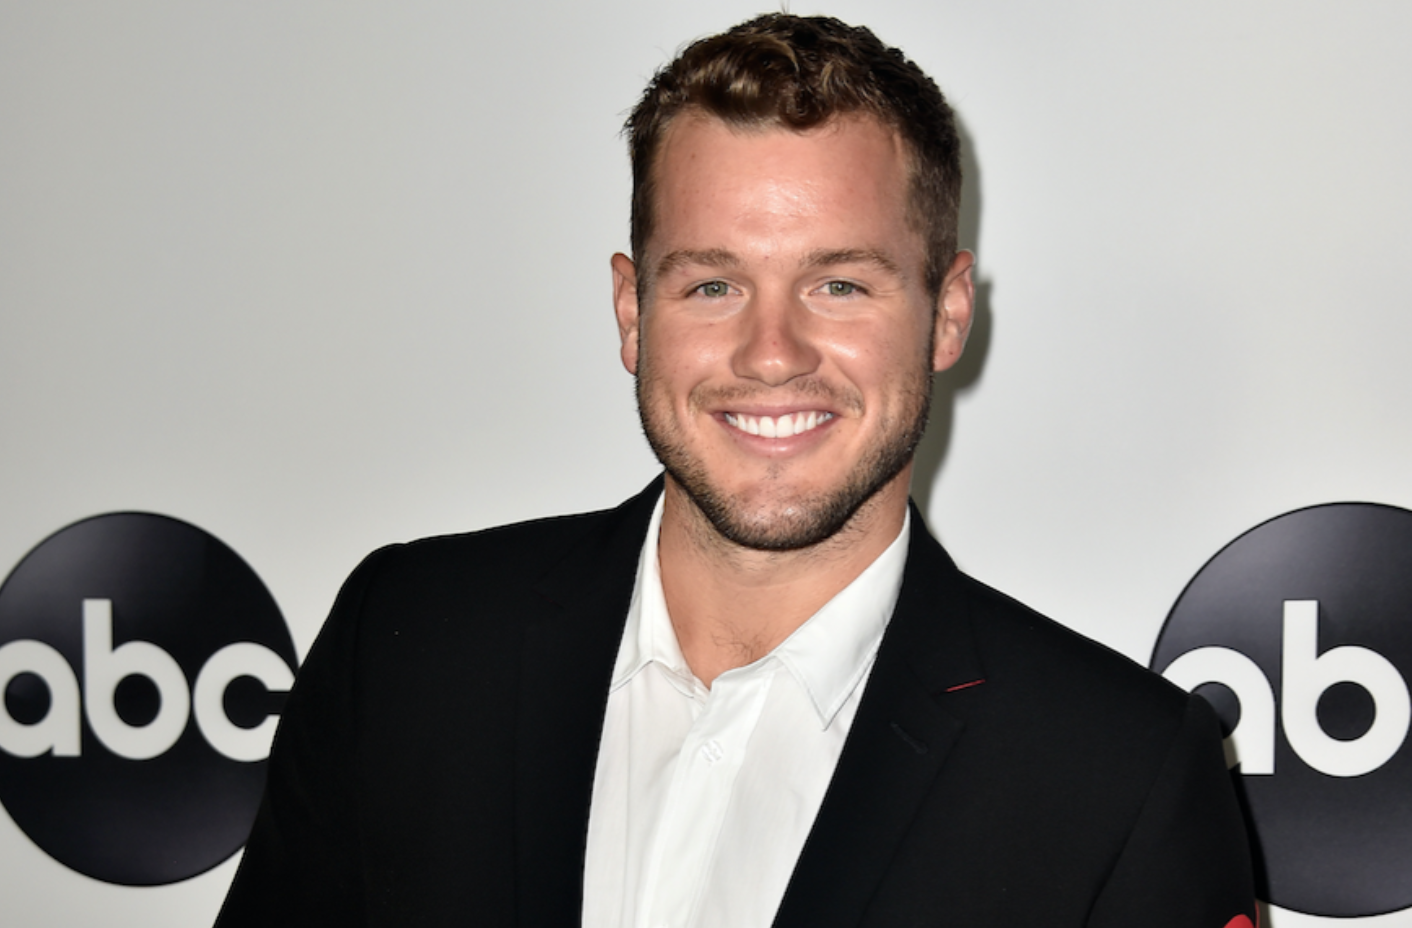 Colton Underwood is 'The Bachelor' for Season 23